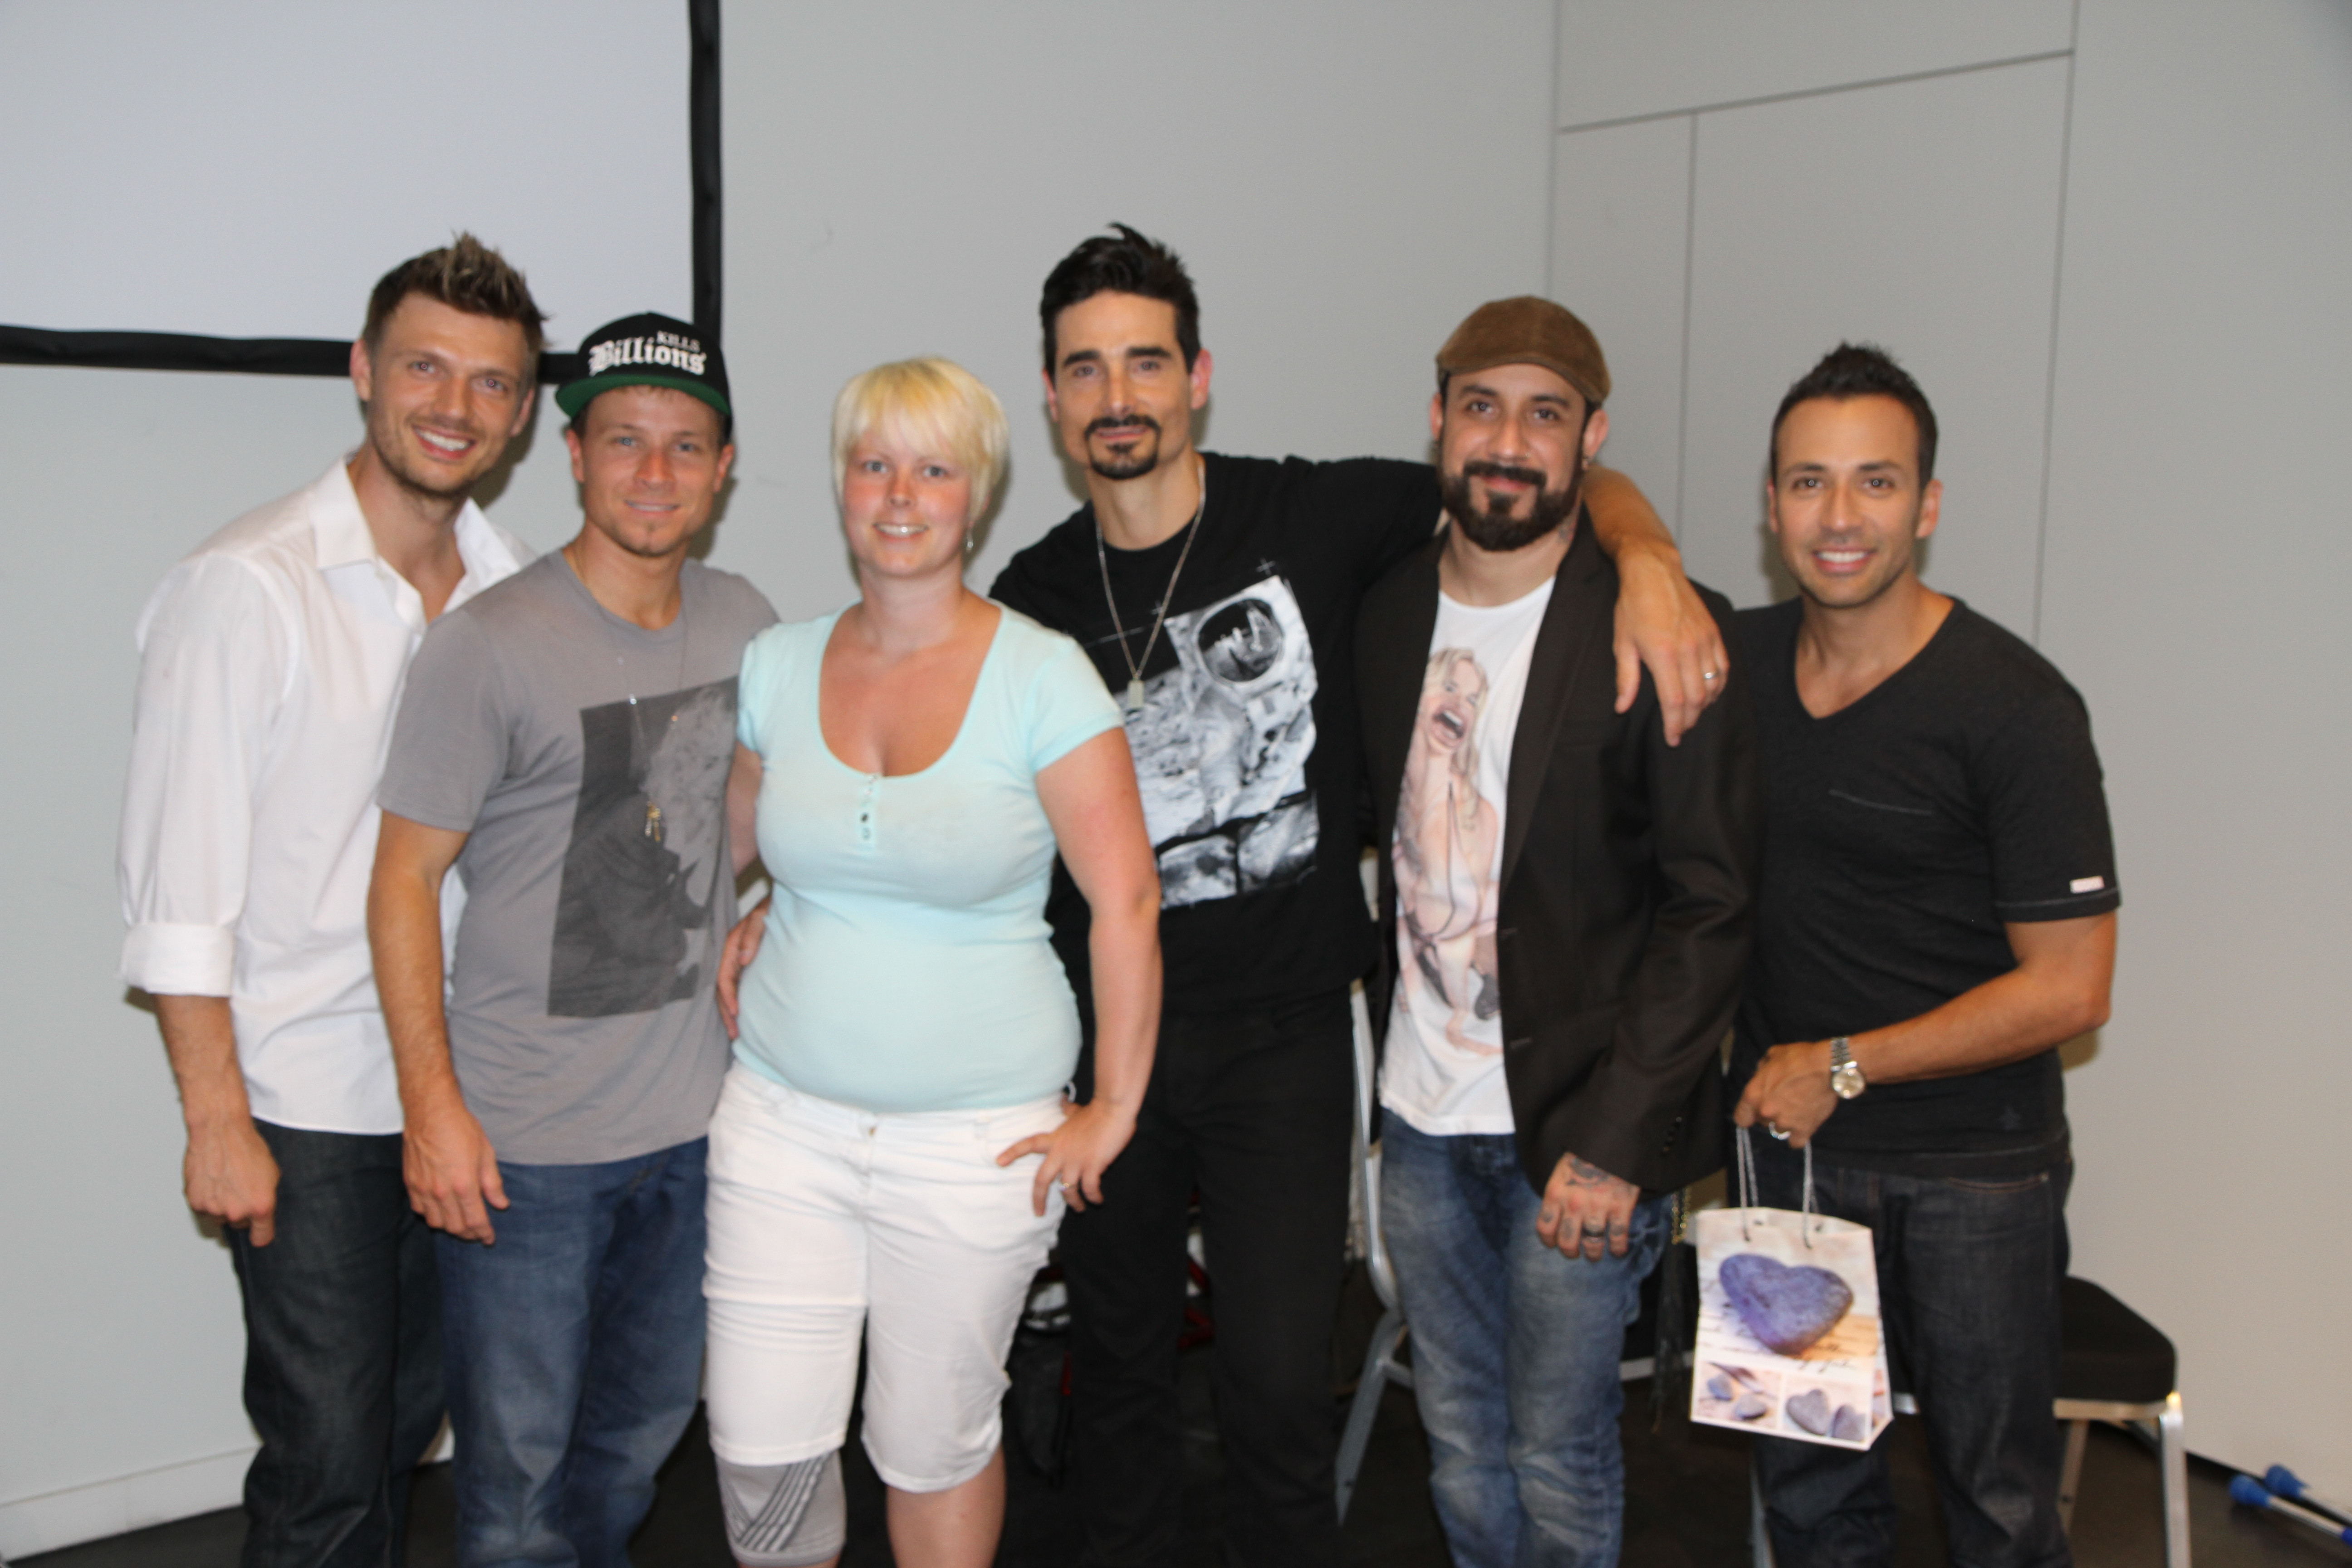 Backstreet boys berlin fan event meet and greet 07042013 21 comments download original m4hsunfo Image collections